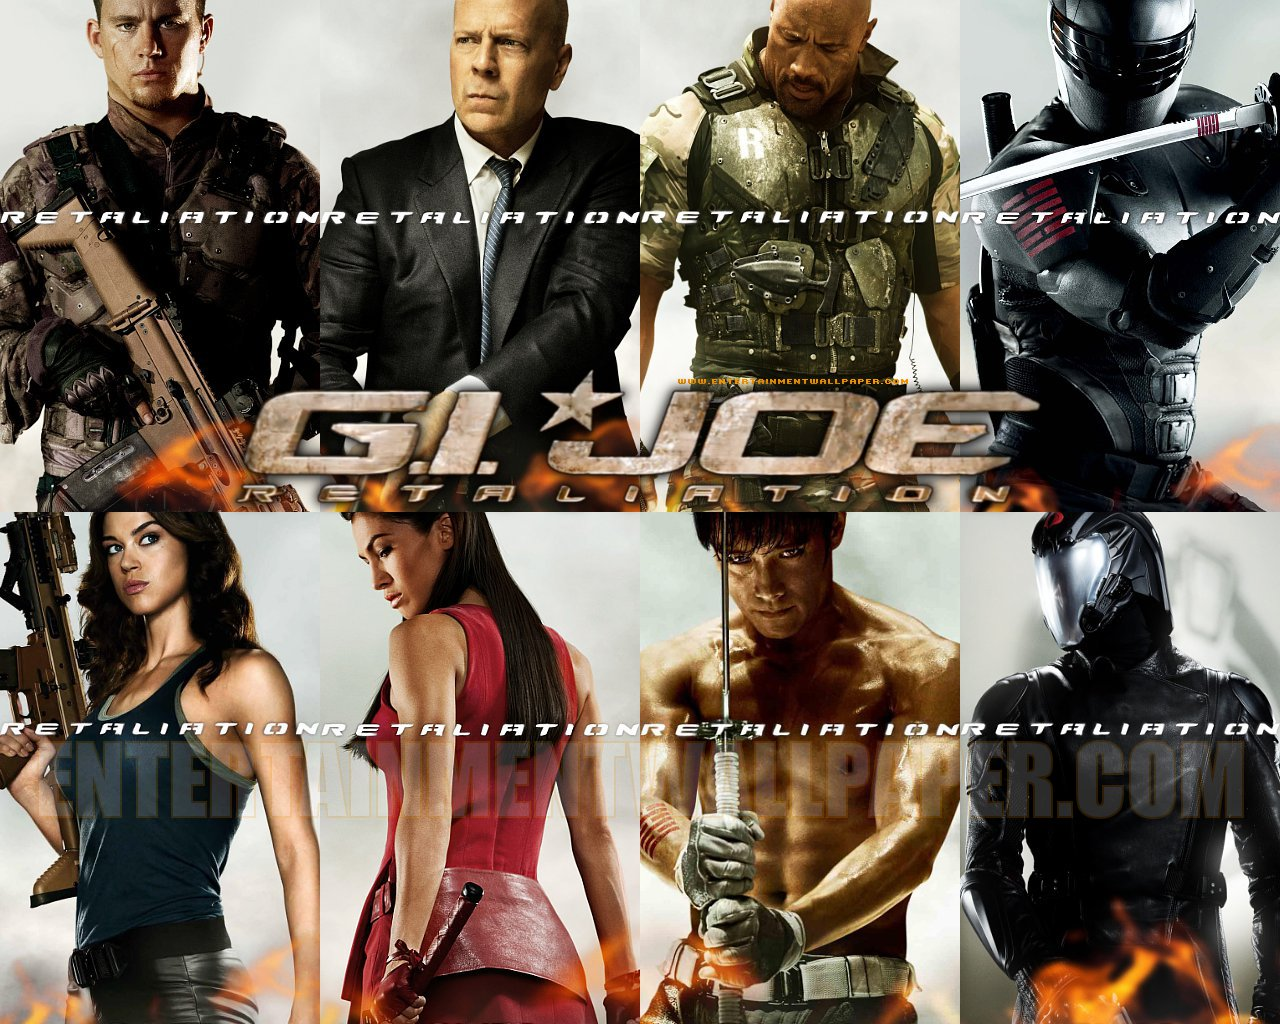 http://2.bp.blogspot.com/-Q7NuLKUdonQ/UQ4ds_RYw5I/AAAAAAAAAIQ/RvhpmrErBZU/s1600/G-I-Joe-Retaliation-2013-upcoming-movies-31017784-1280-1024.jpg